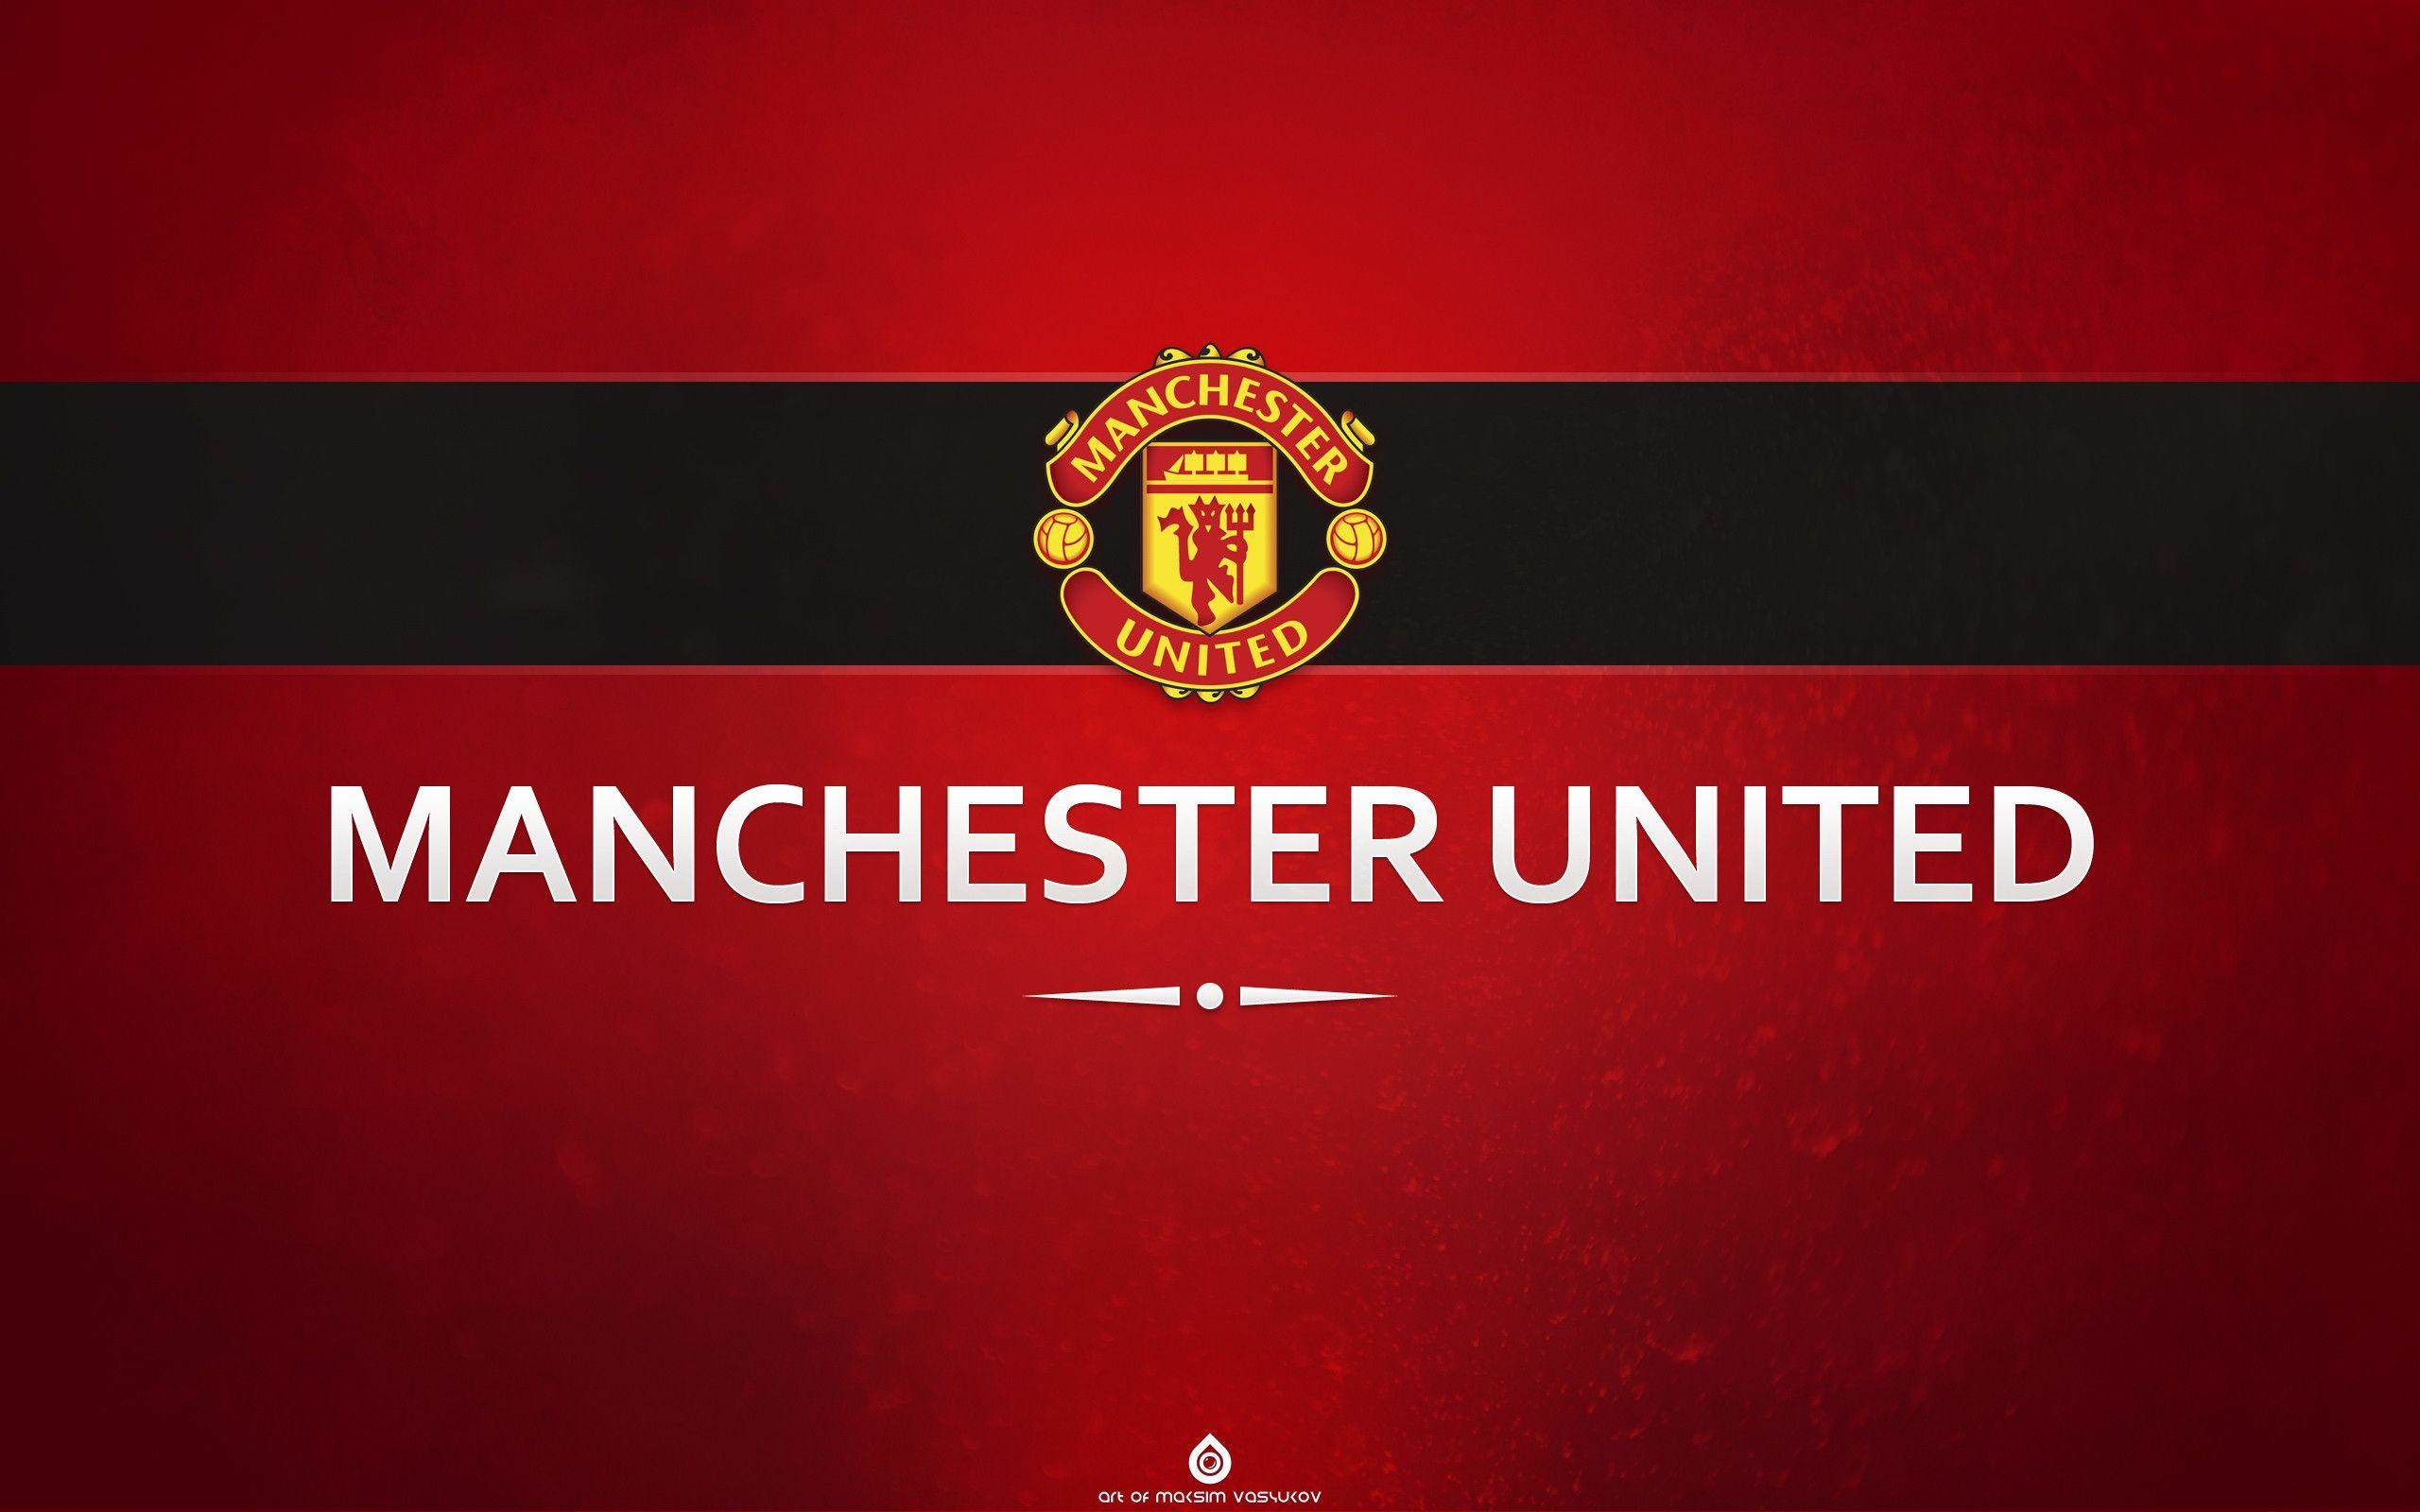 Manchester United HD Wallpapers 2018 88 images 2560x1600